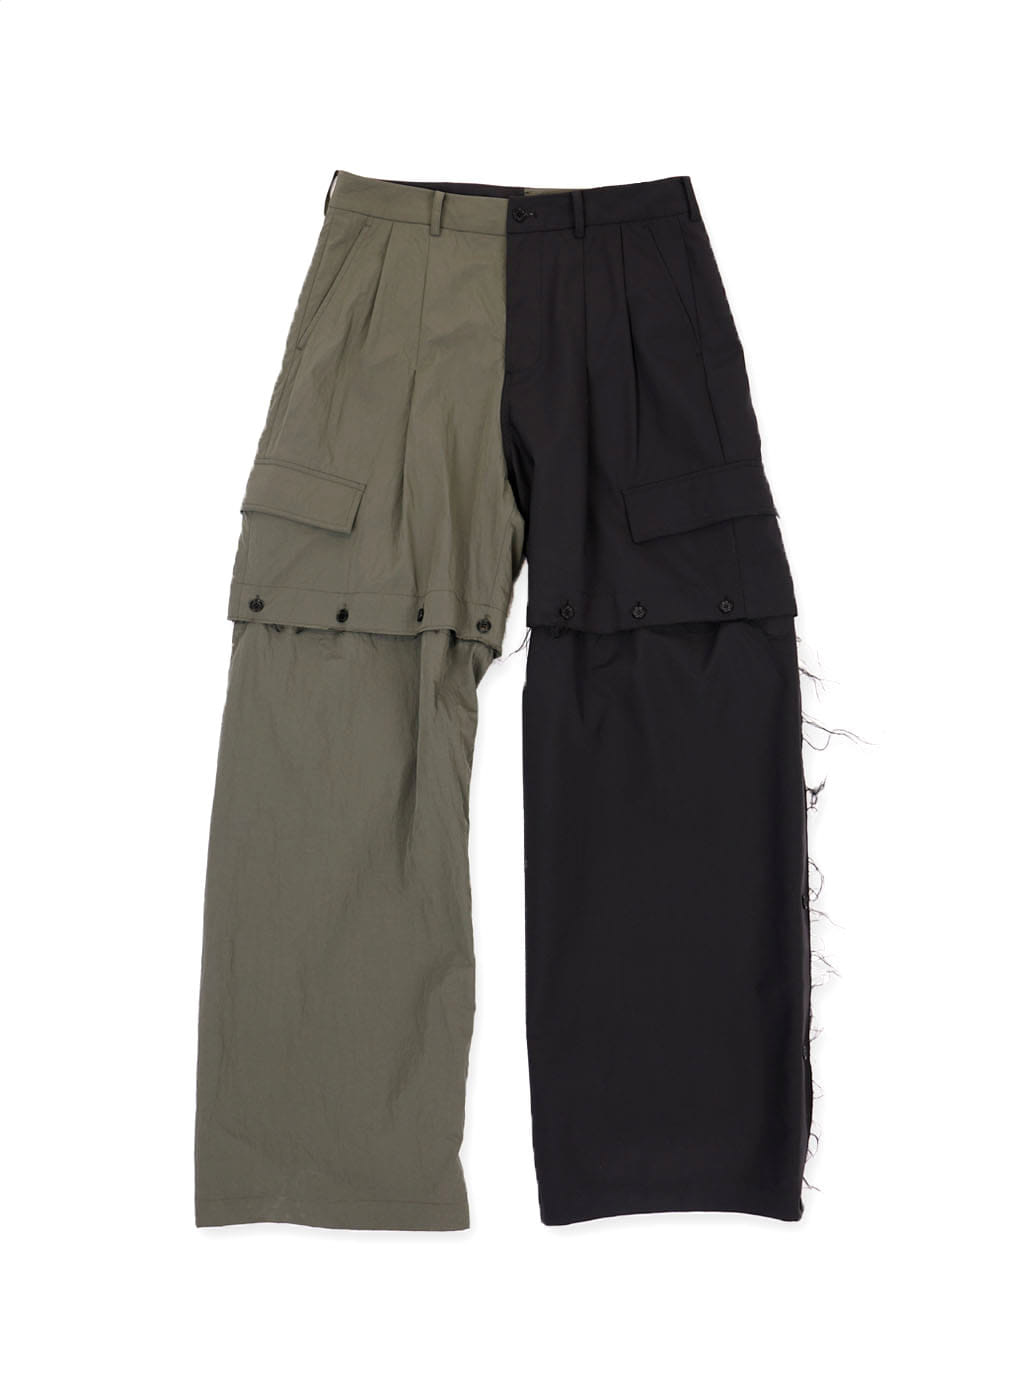 Black/Khaki Fabric Contrast Detachable Panel Pants